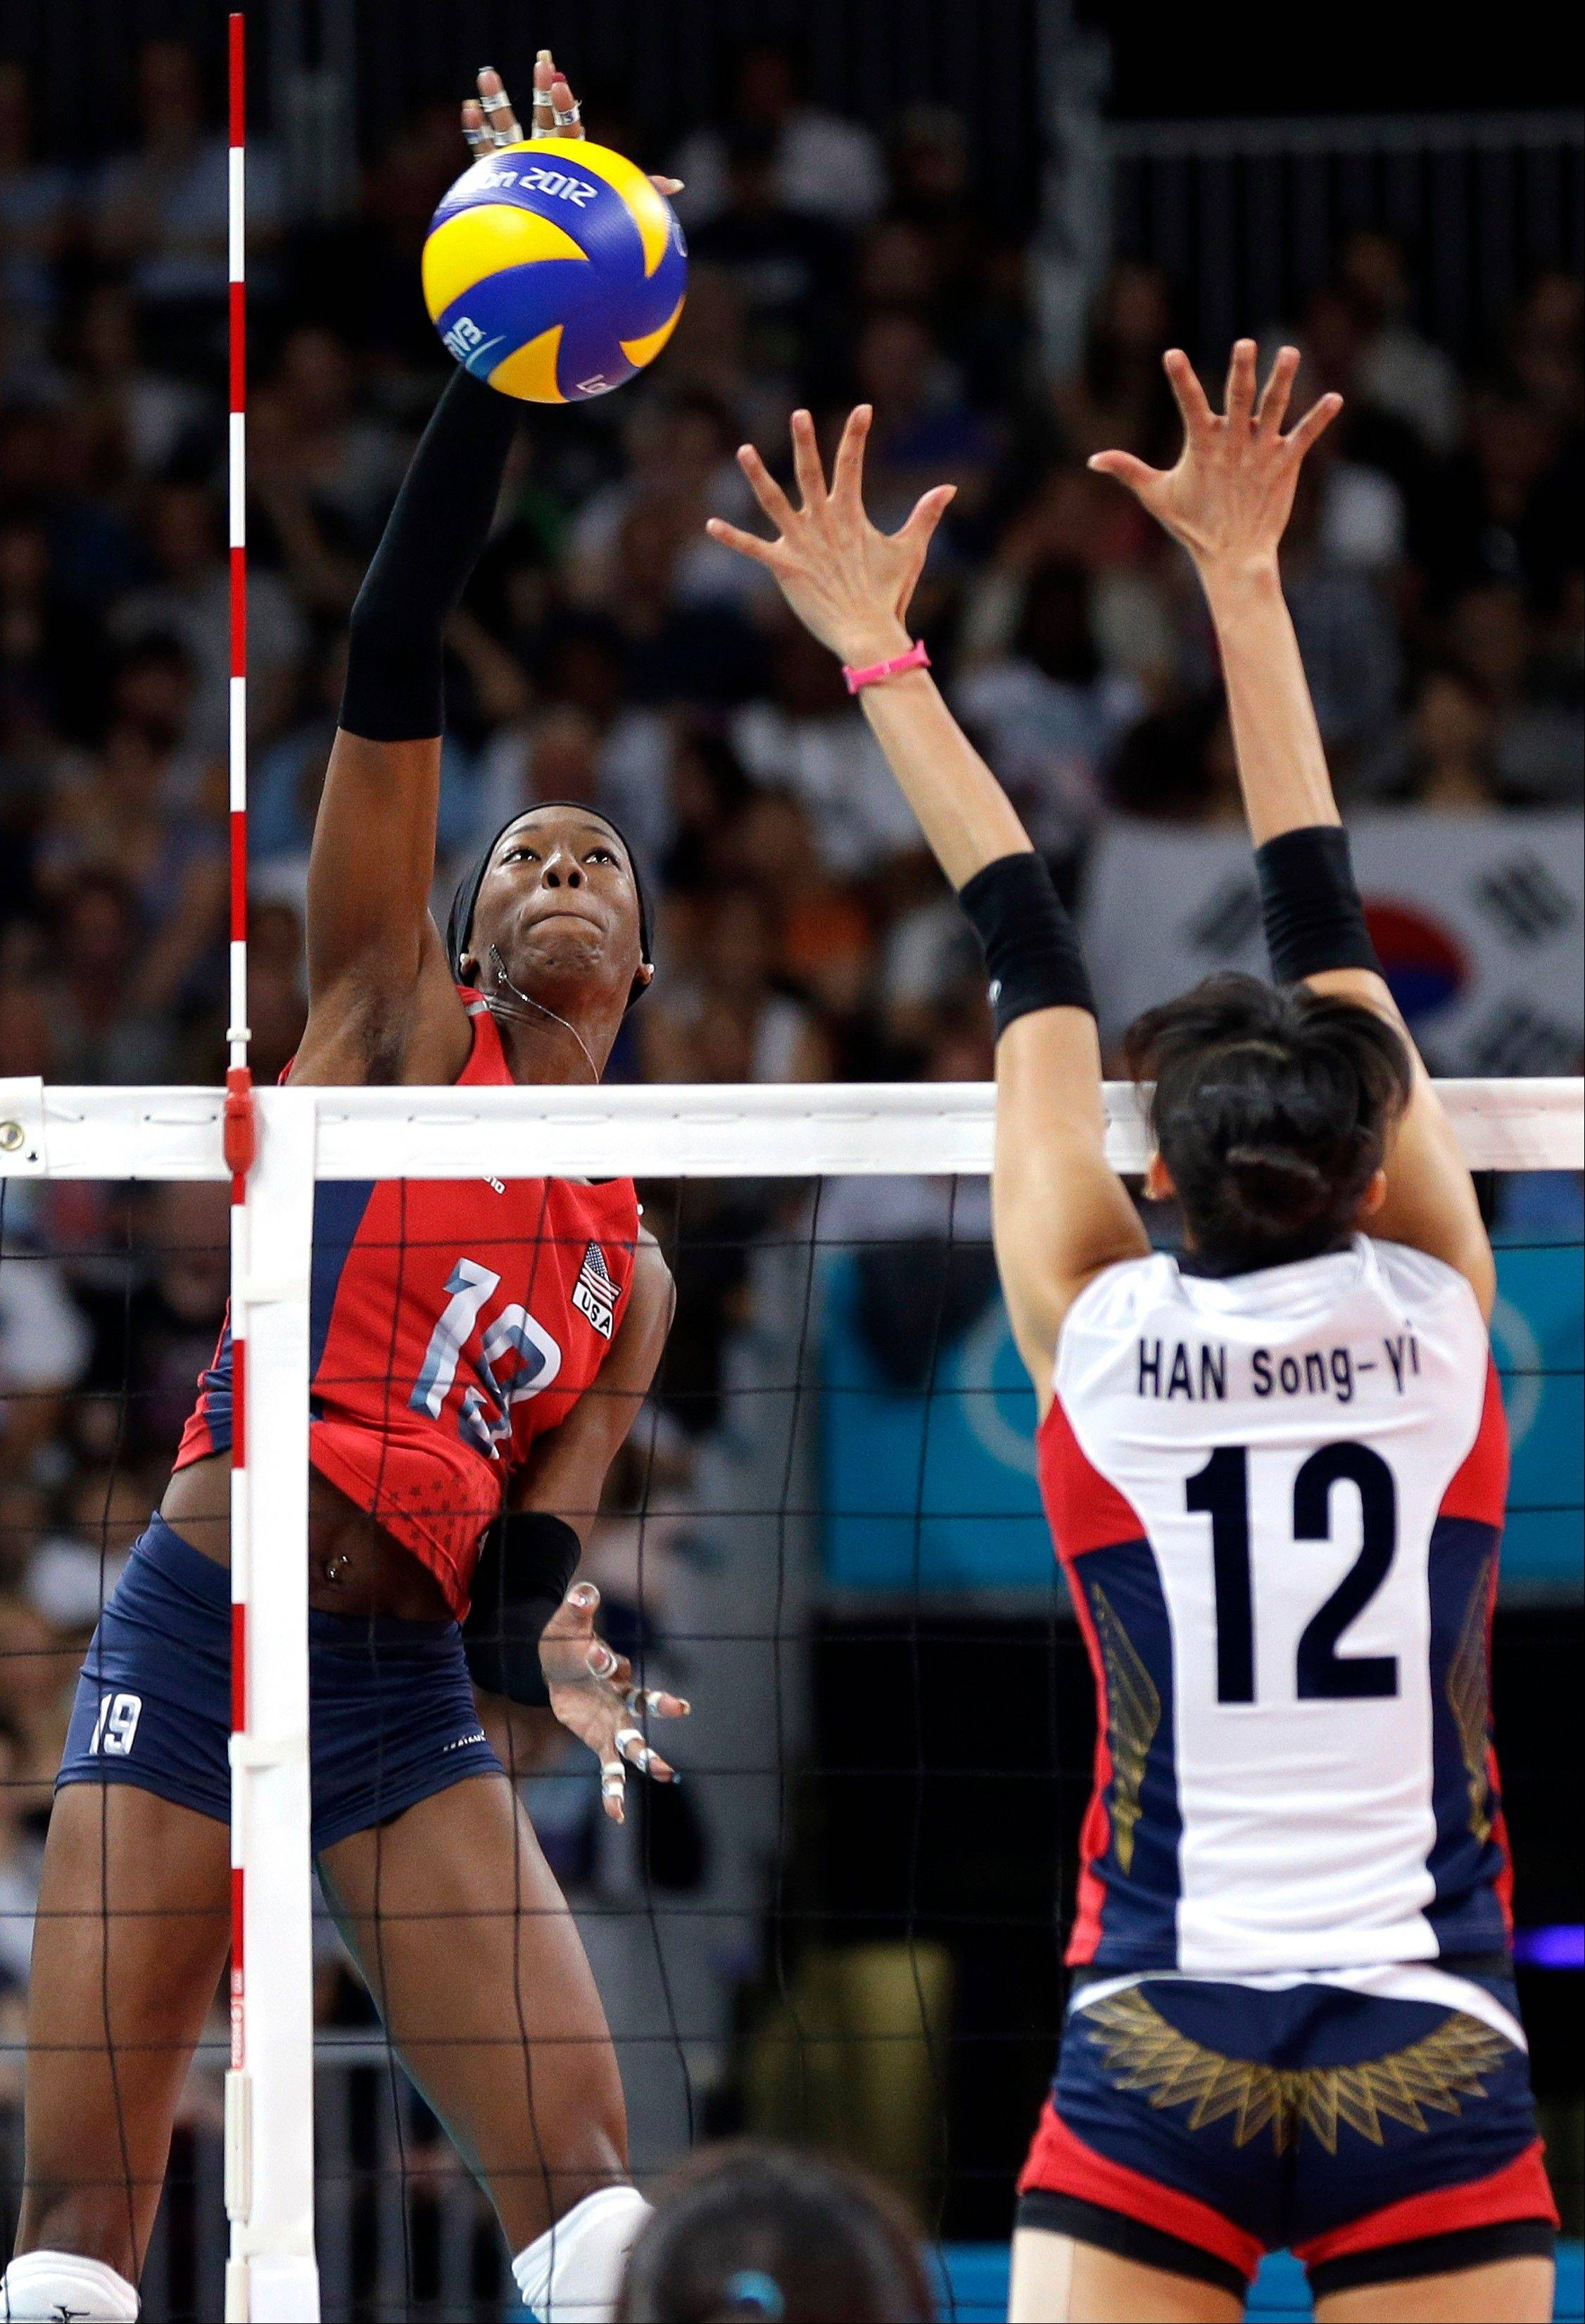 USA's Destinee Hooker (19) goes up for a smash in front of South Korea's Han Song-yi (12) during a women's volleyball semifinal match at the 2012 Summer Olympics Thursday, Aug. 9, 2012, in London. (AP Photo/Chris O'Meara)